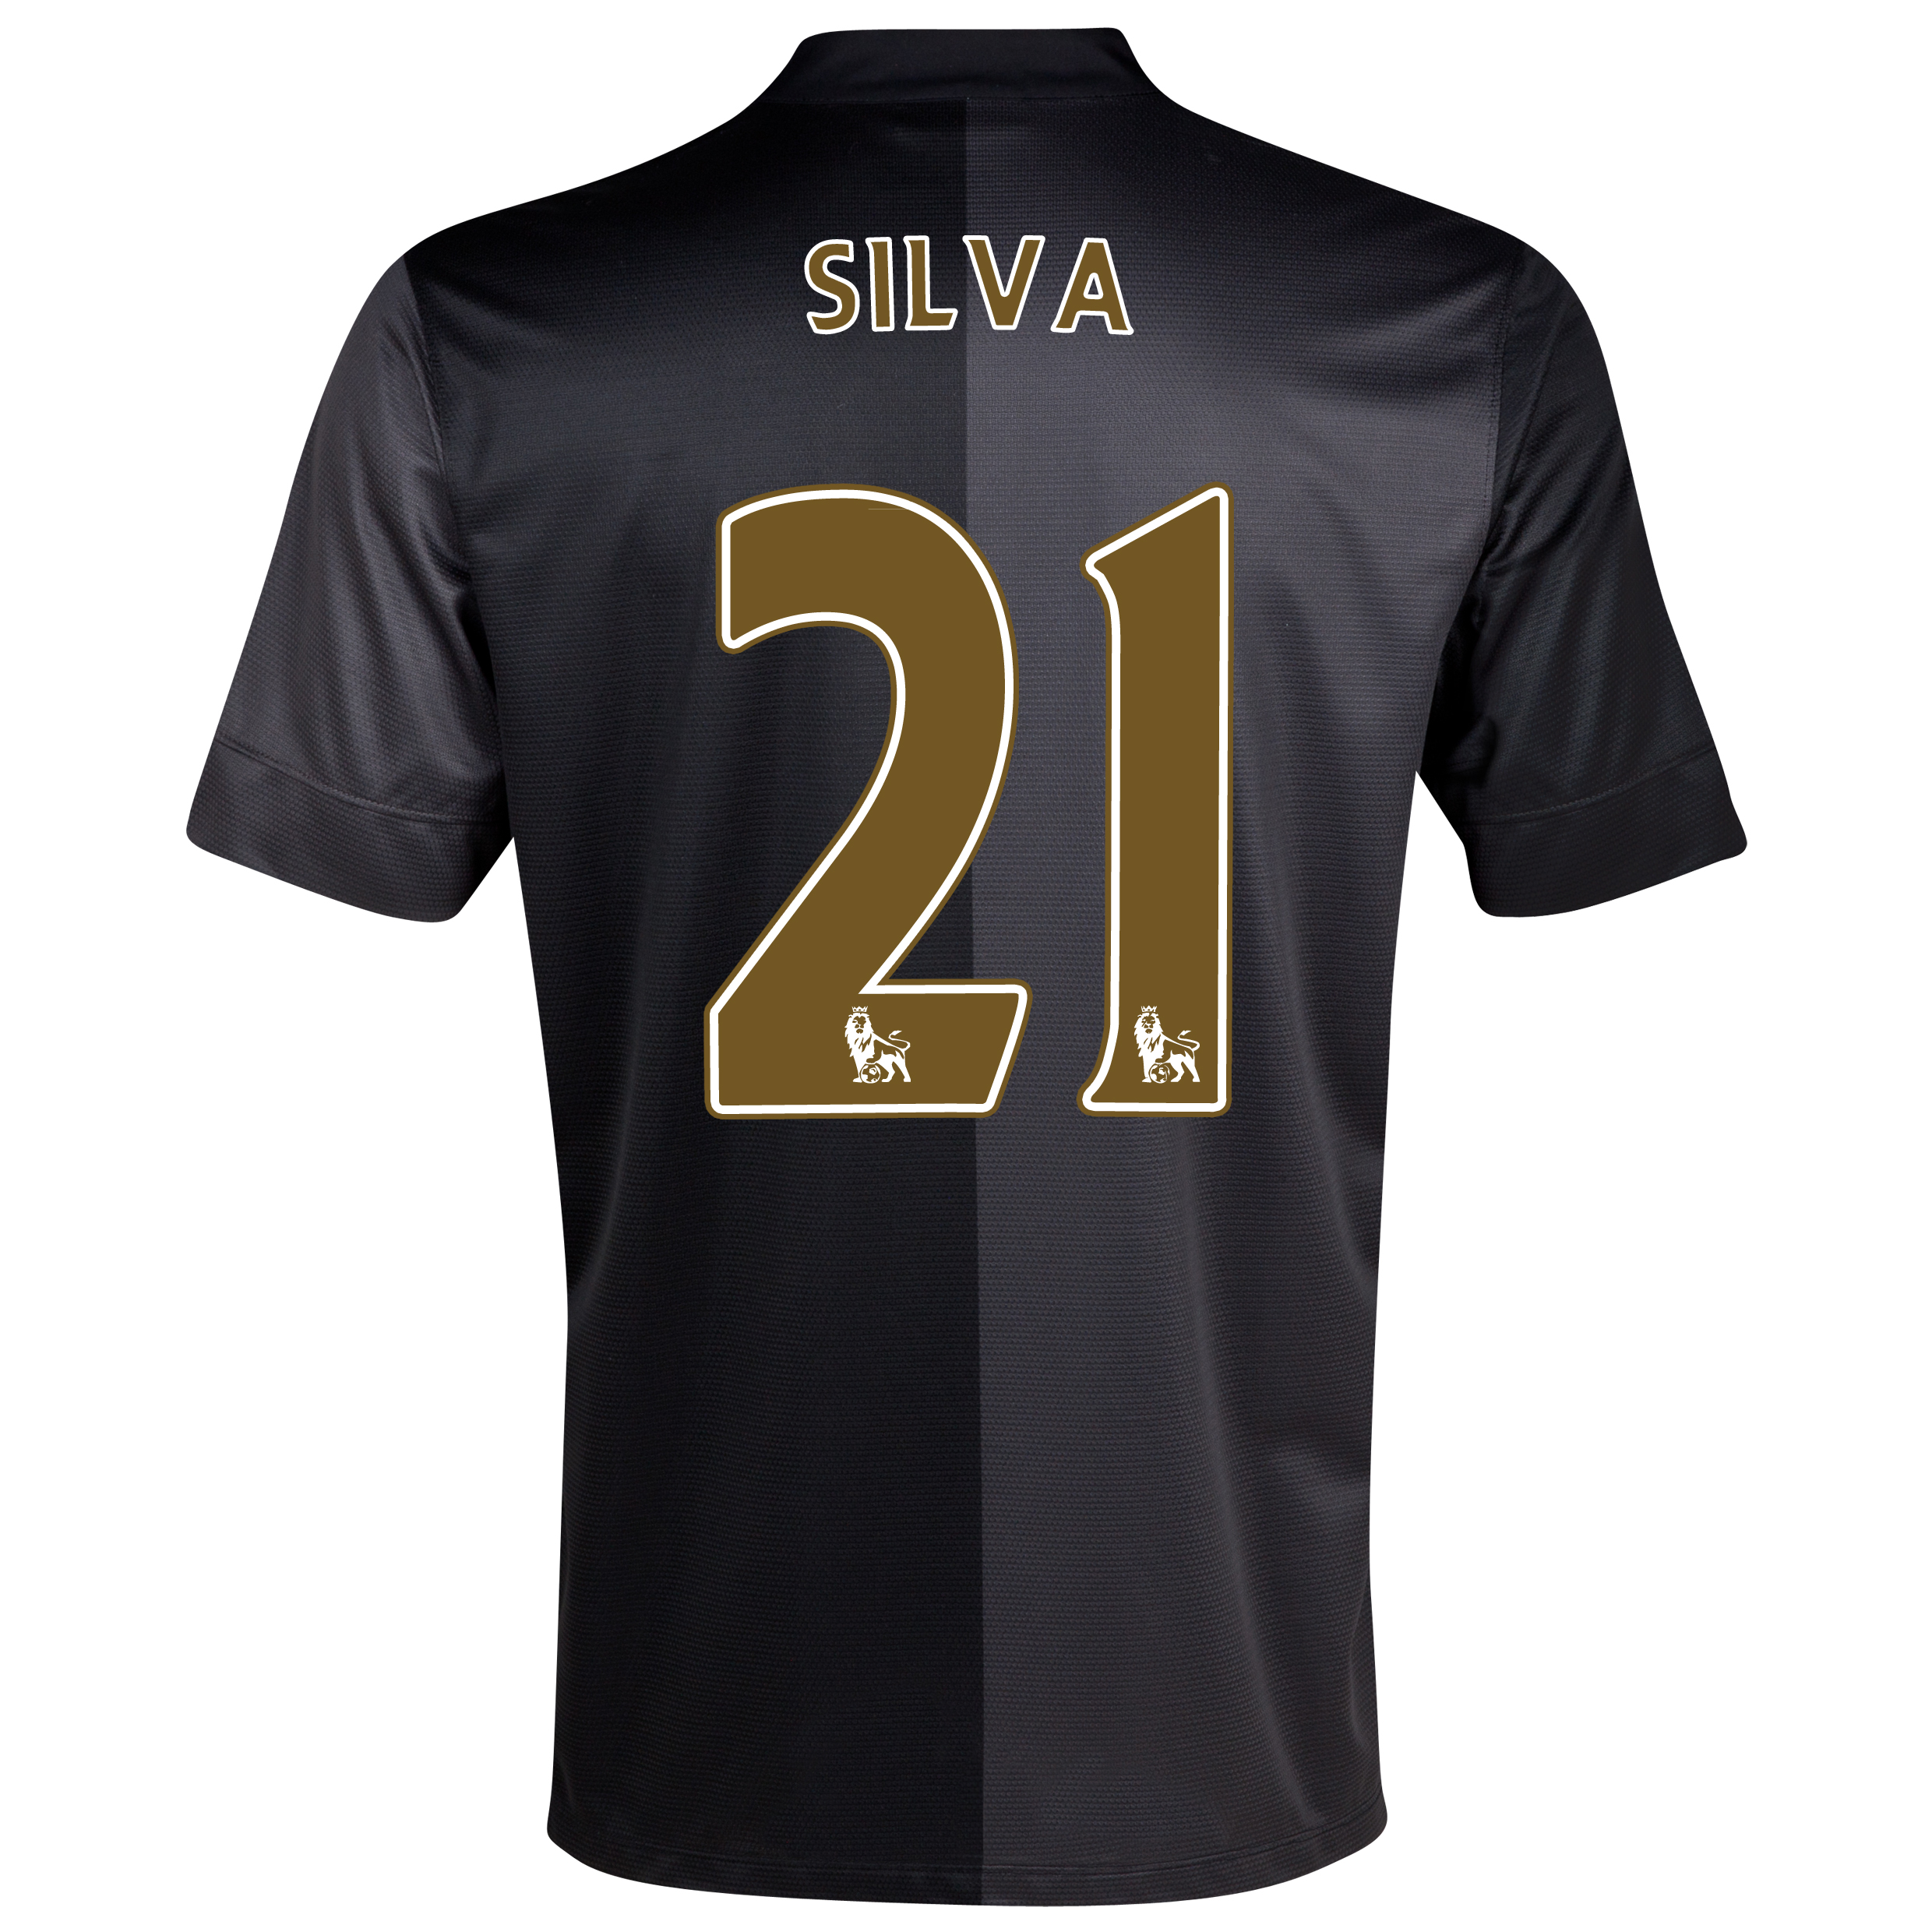 Manchester City Away Shirt 2013/14 with Silva 21 printing